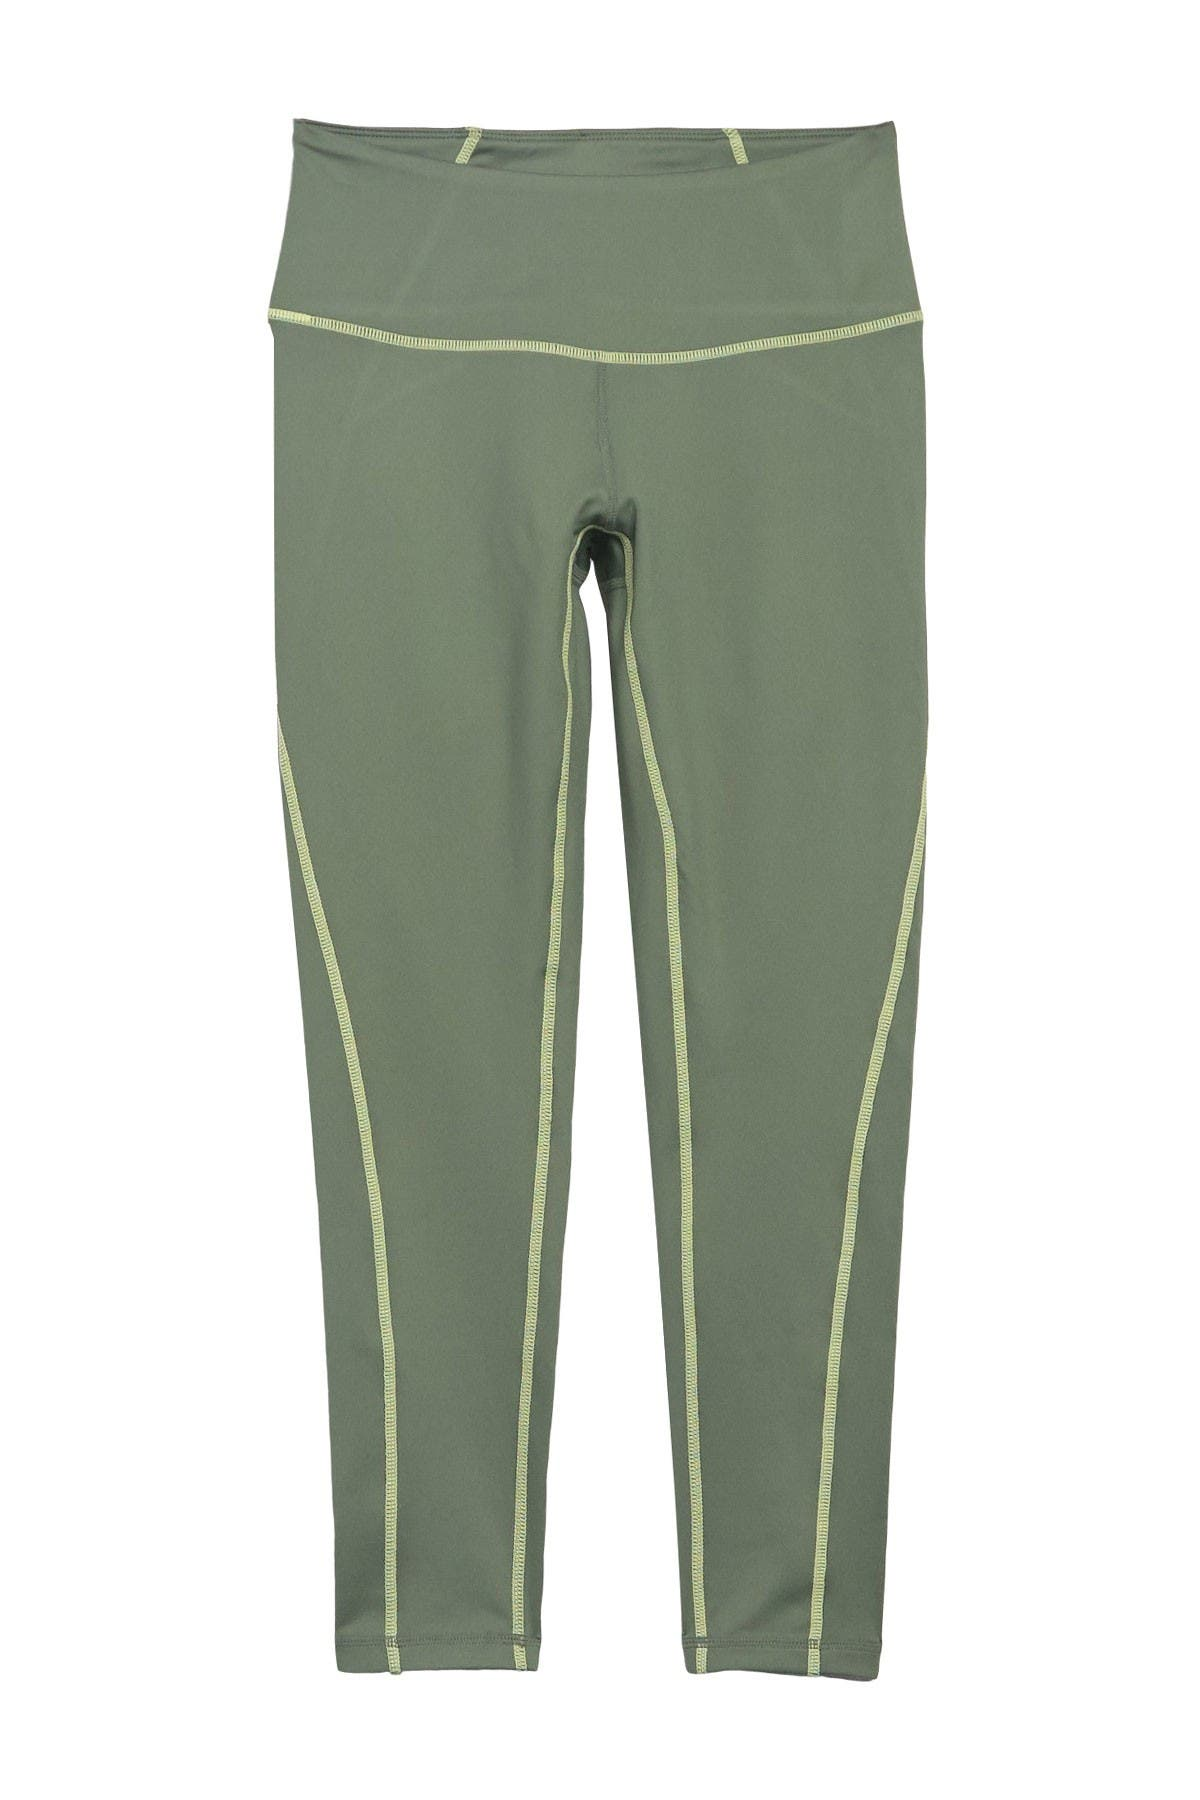 Z By Zella High Waisted Daily Leggings